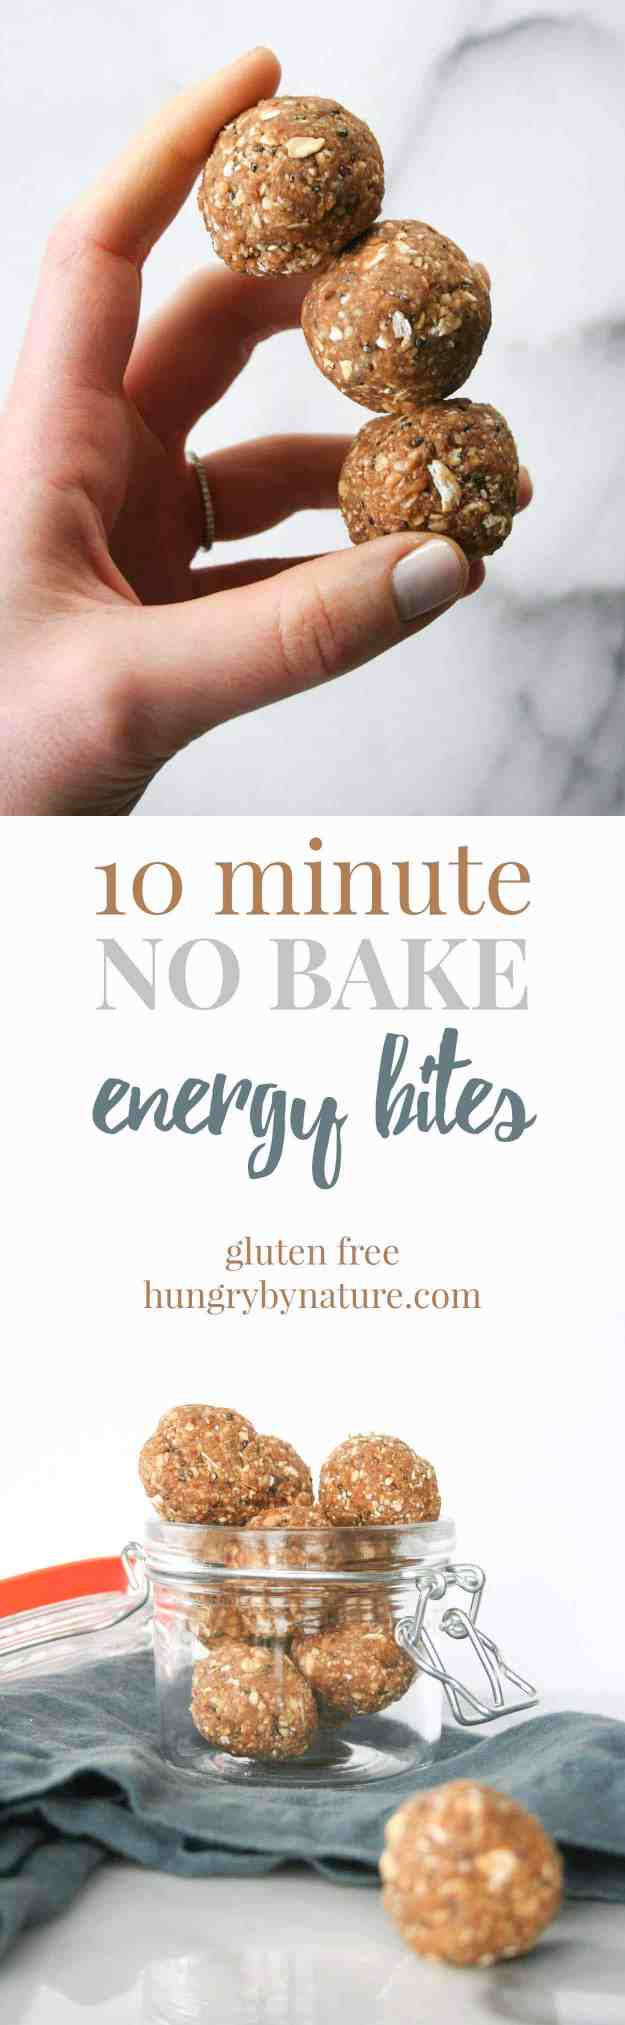 10 Minute No Bake Energy Bites | protein, easy, healthy, gluten free, chia, dates | hungrybynature.com